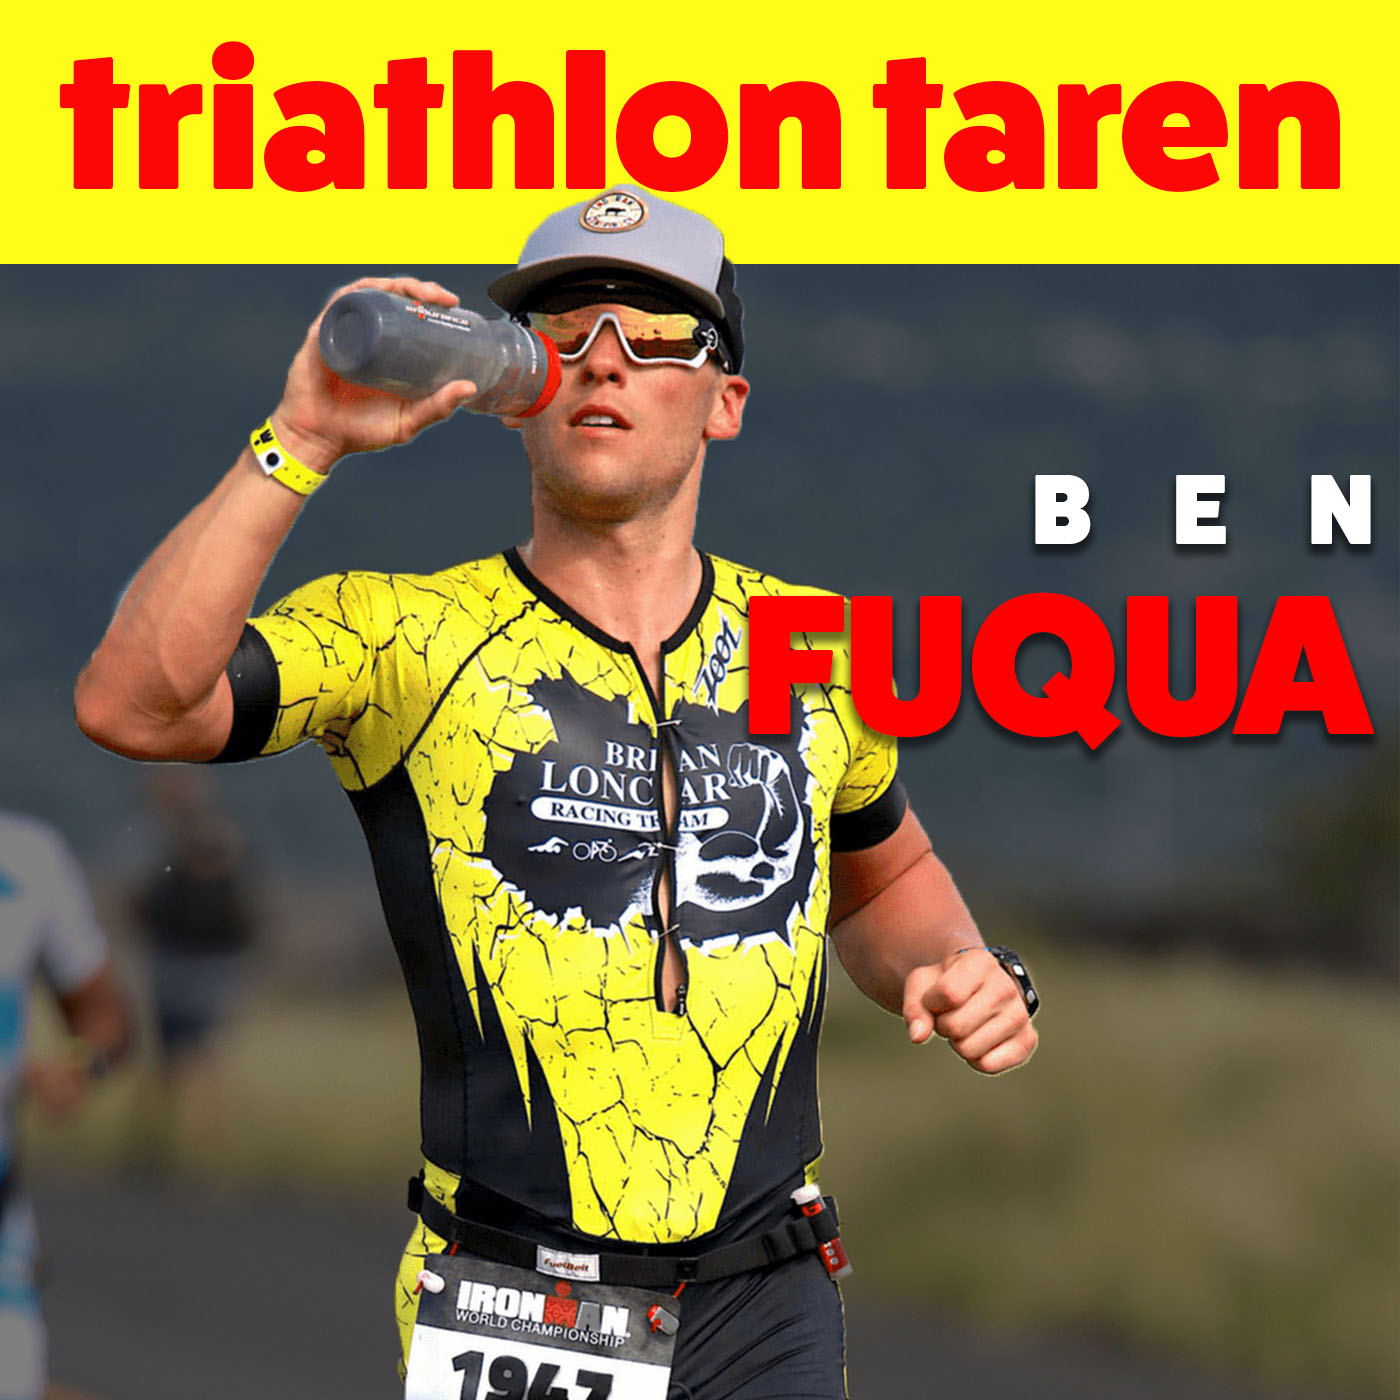 Ben Fuqua: Top 10 American in Kona in Just 5 Days a Week